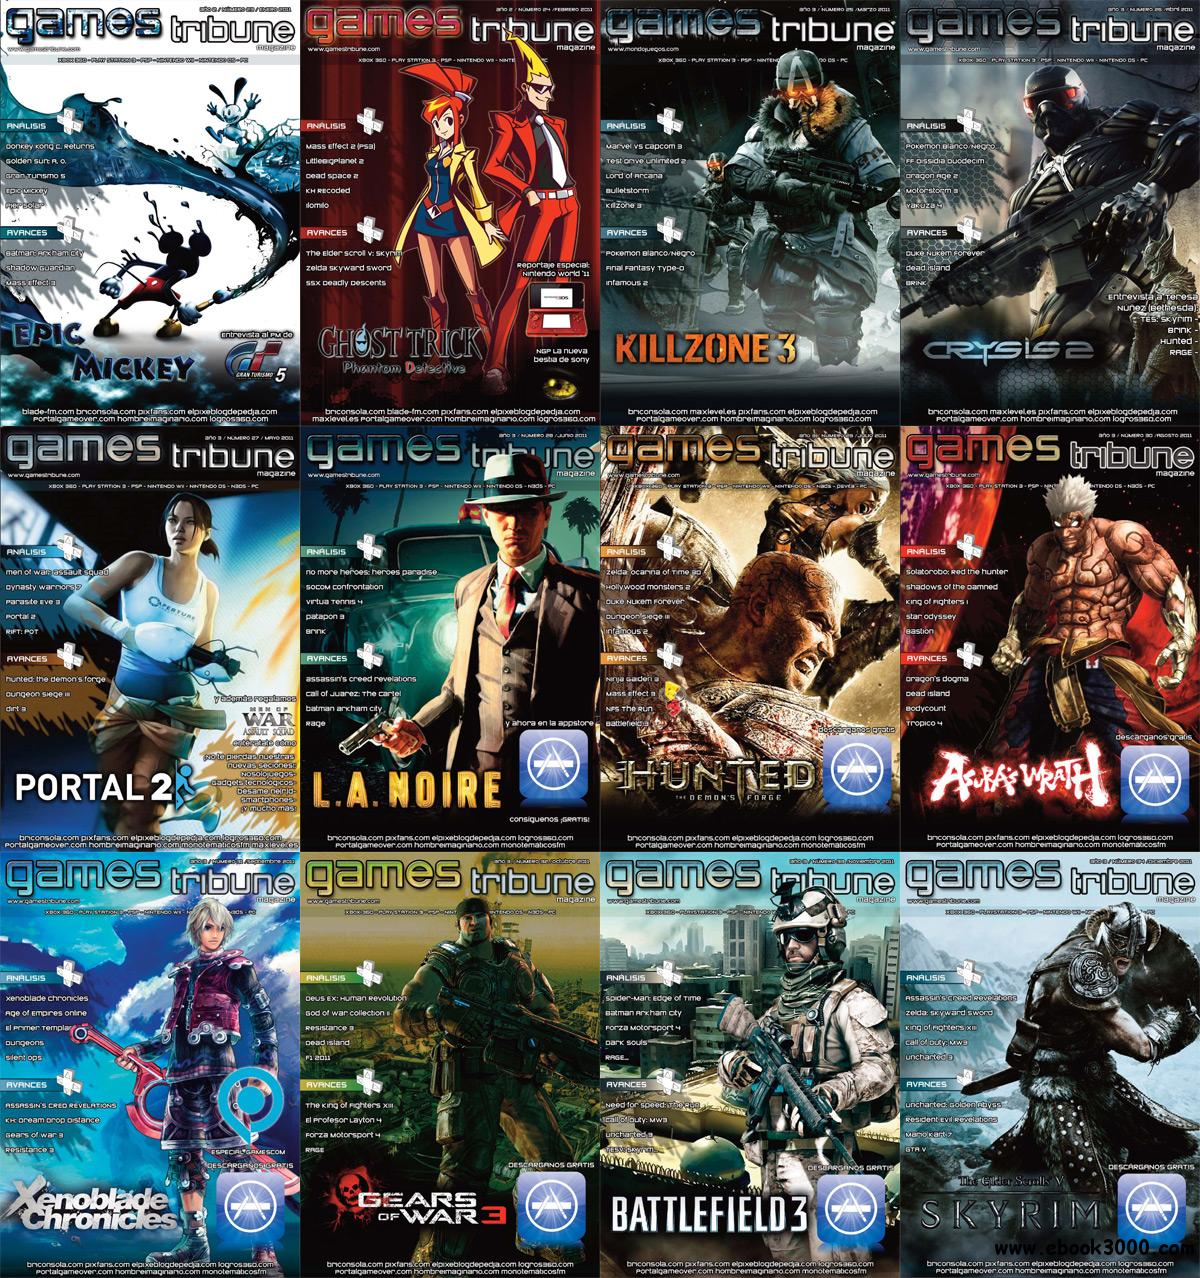 Games Tribune 2011 Full Year Collection free download